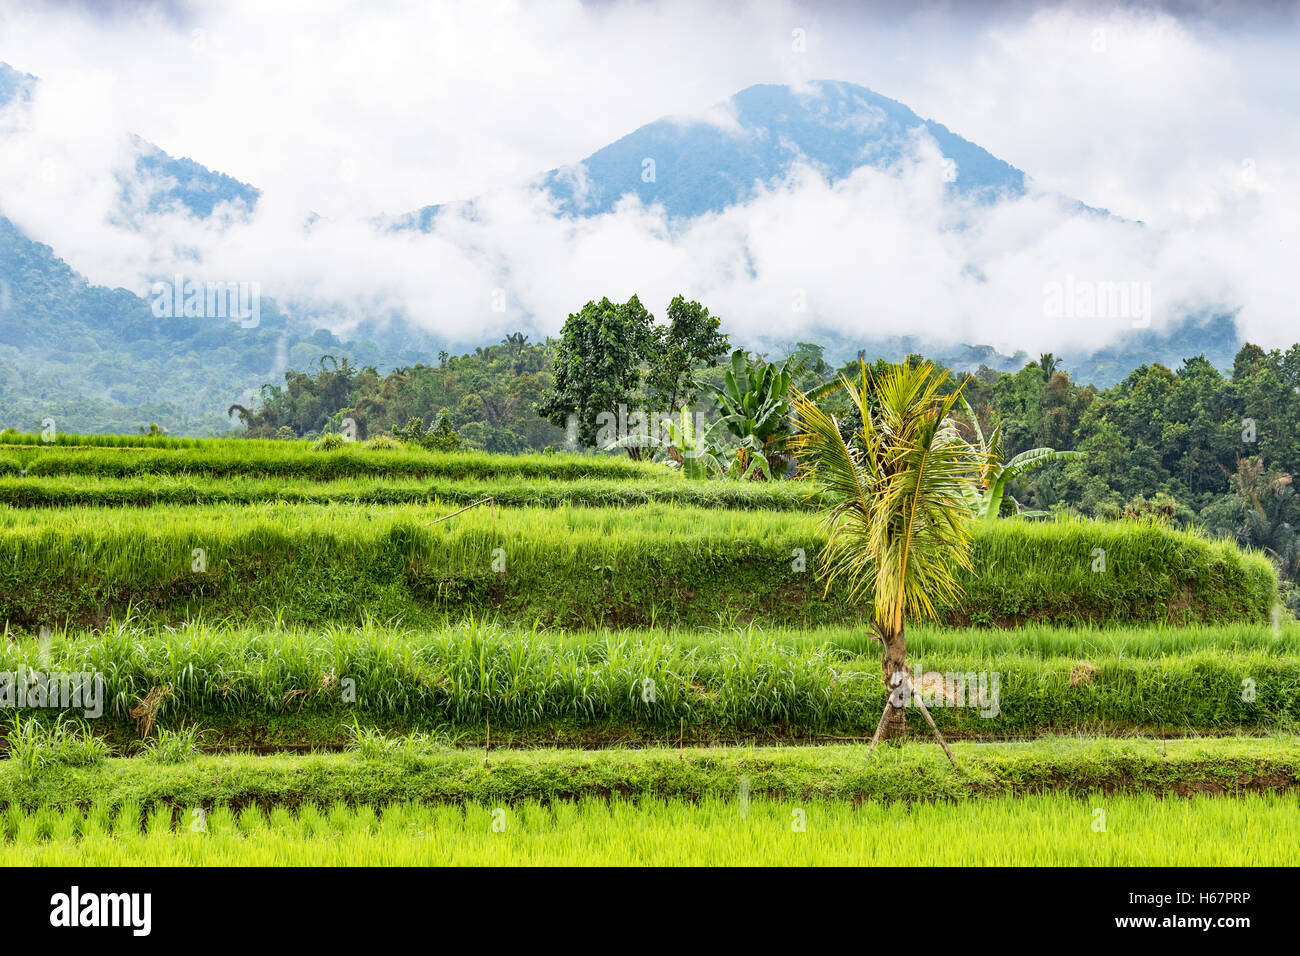 Rice Terraces and volcanic mountains on a rainy day in Jatiluwih, in Central Bali, Indonesia. Stock Photo